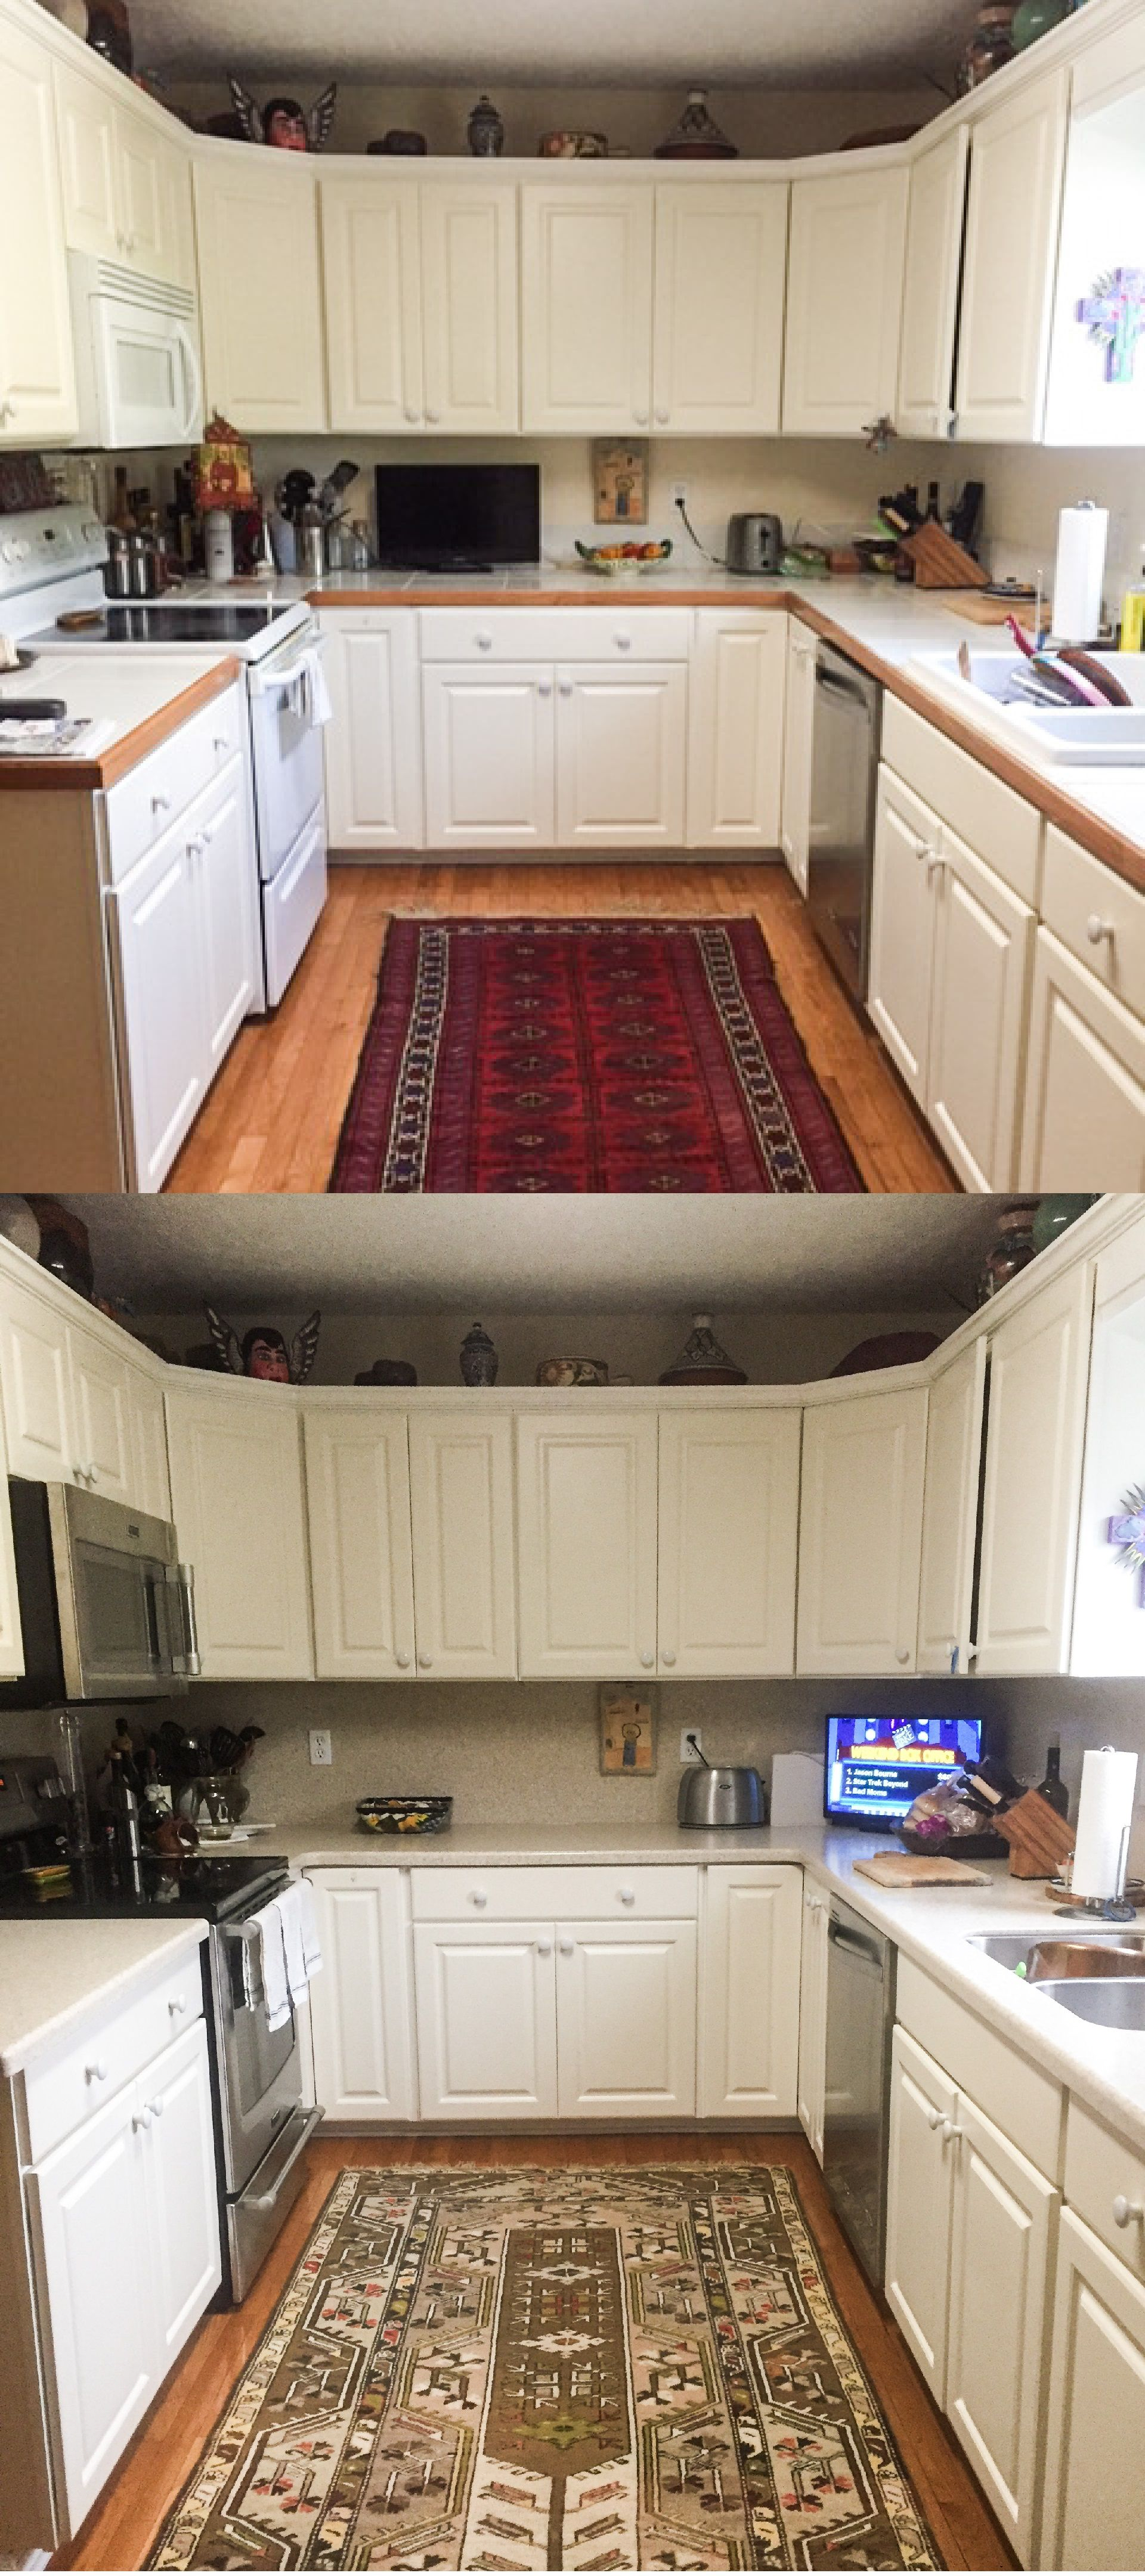 This Augusta Kitchen Had Its Countertops Replaced With Corian Solid Surface In Sahara And Incorporated A Full Hei Kitchen Renovation House Styles Countertops